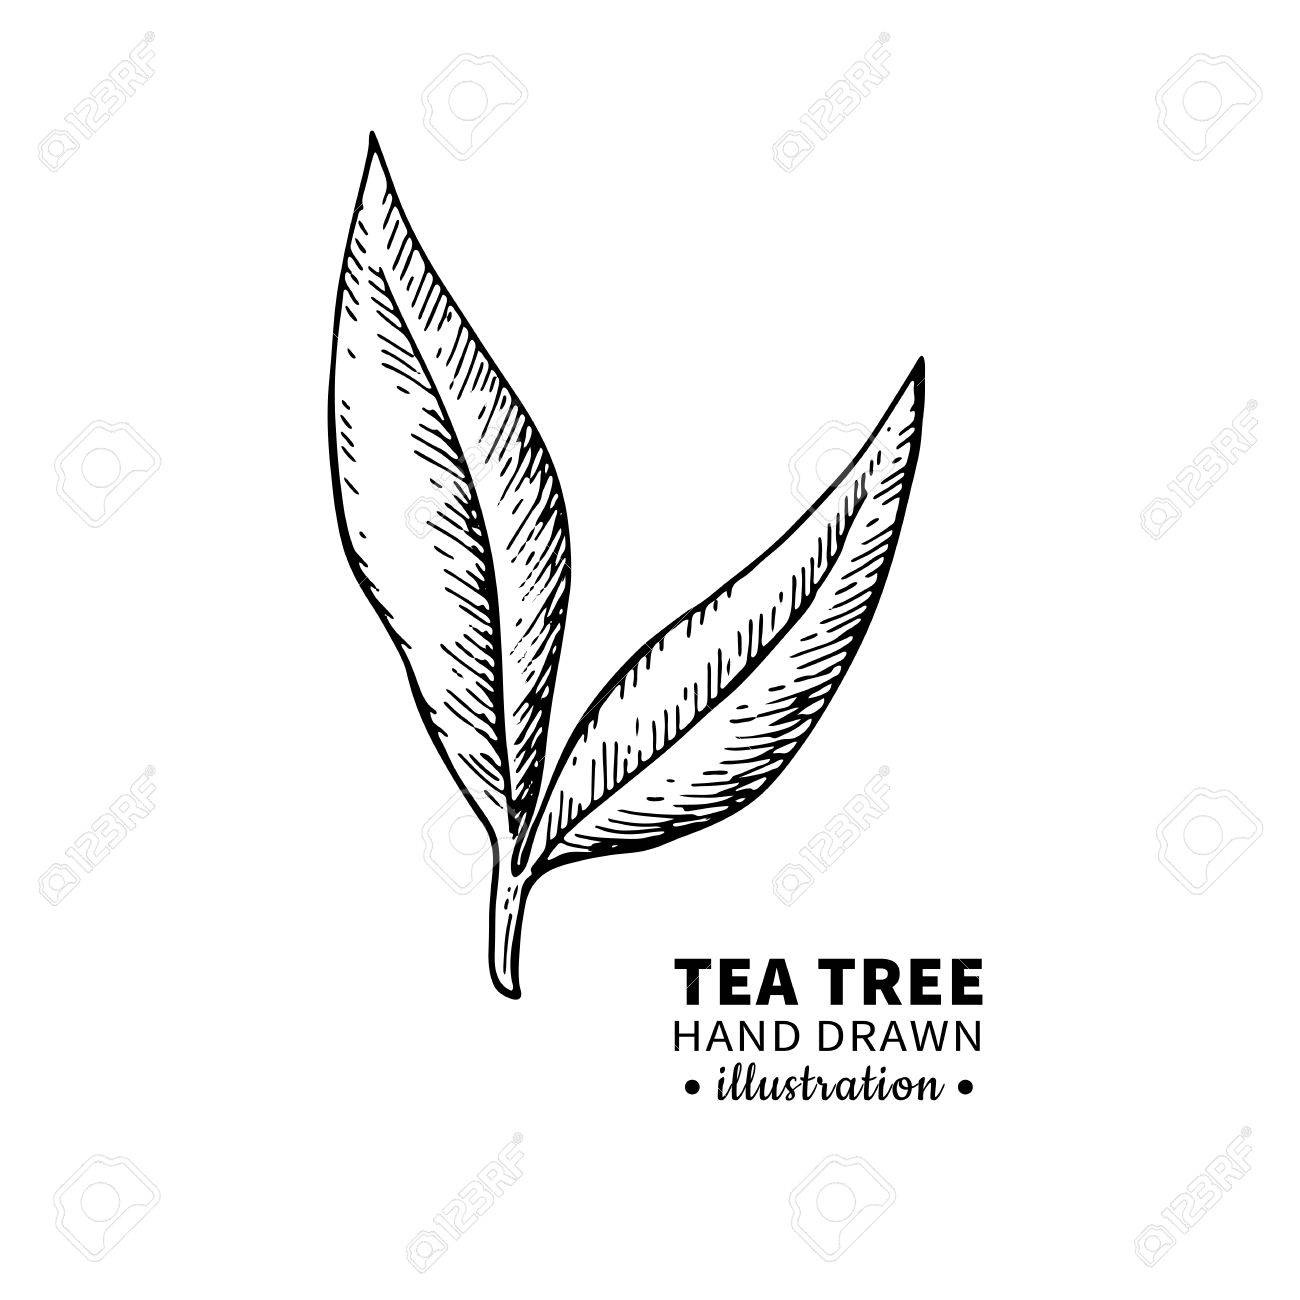 Tea Tree Vector Drawing Isolated Vintage Illustration Of Medical Plant Leaves On Branch Organic